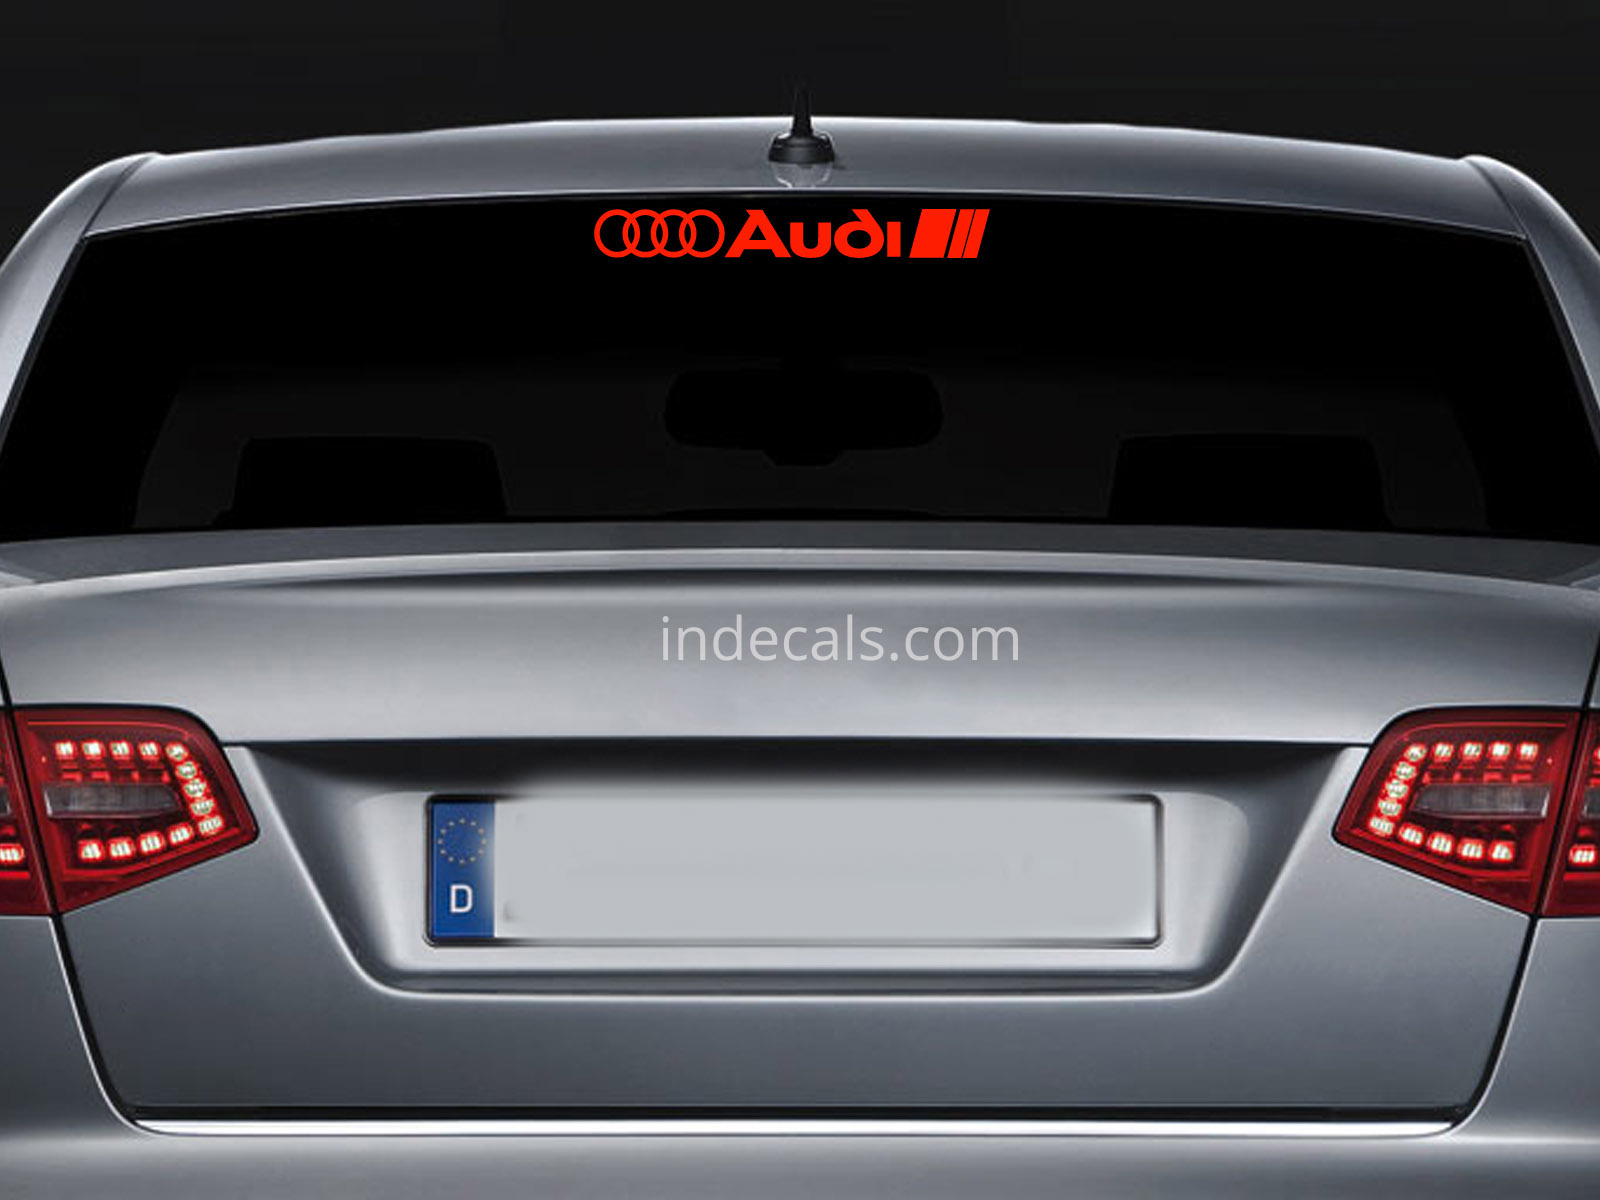 1 x Audi Sticker for Windshield or Back Window - Red